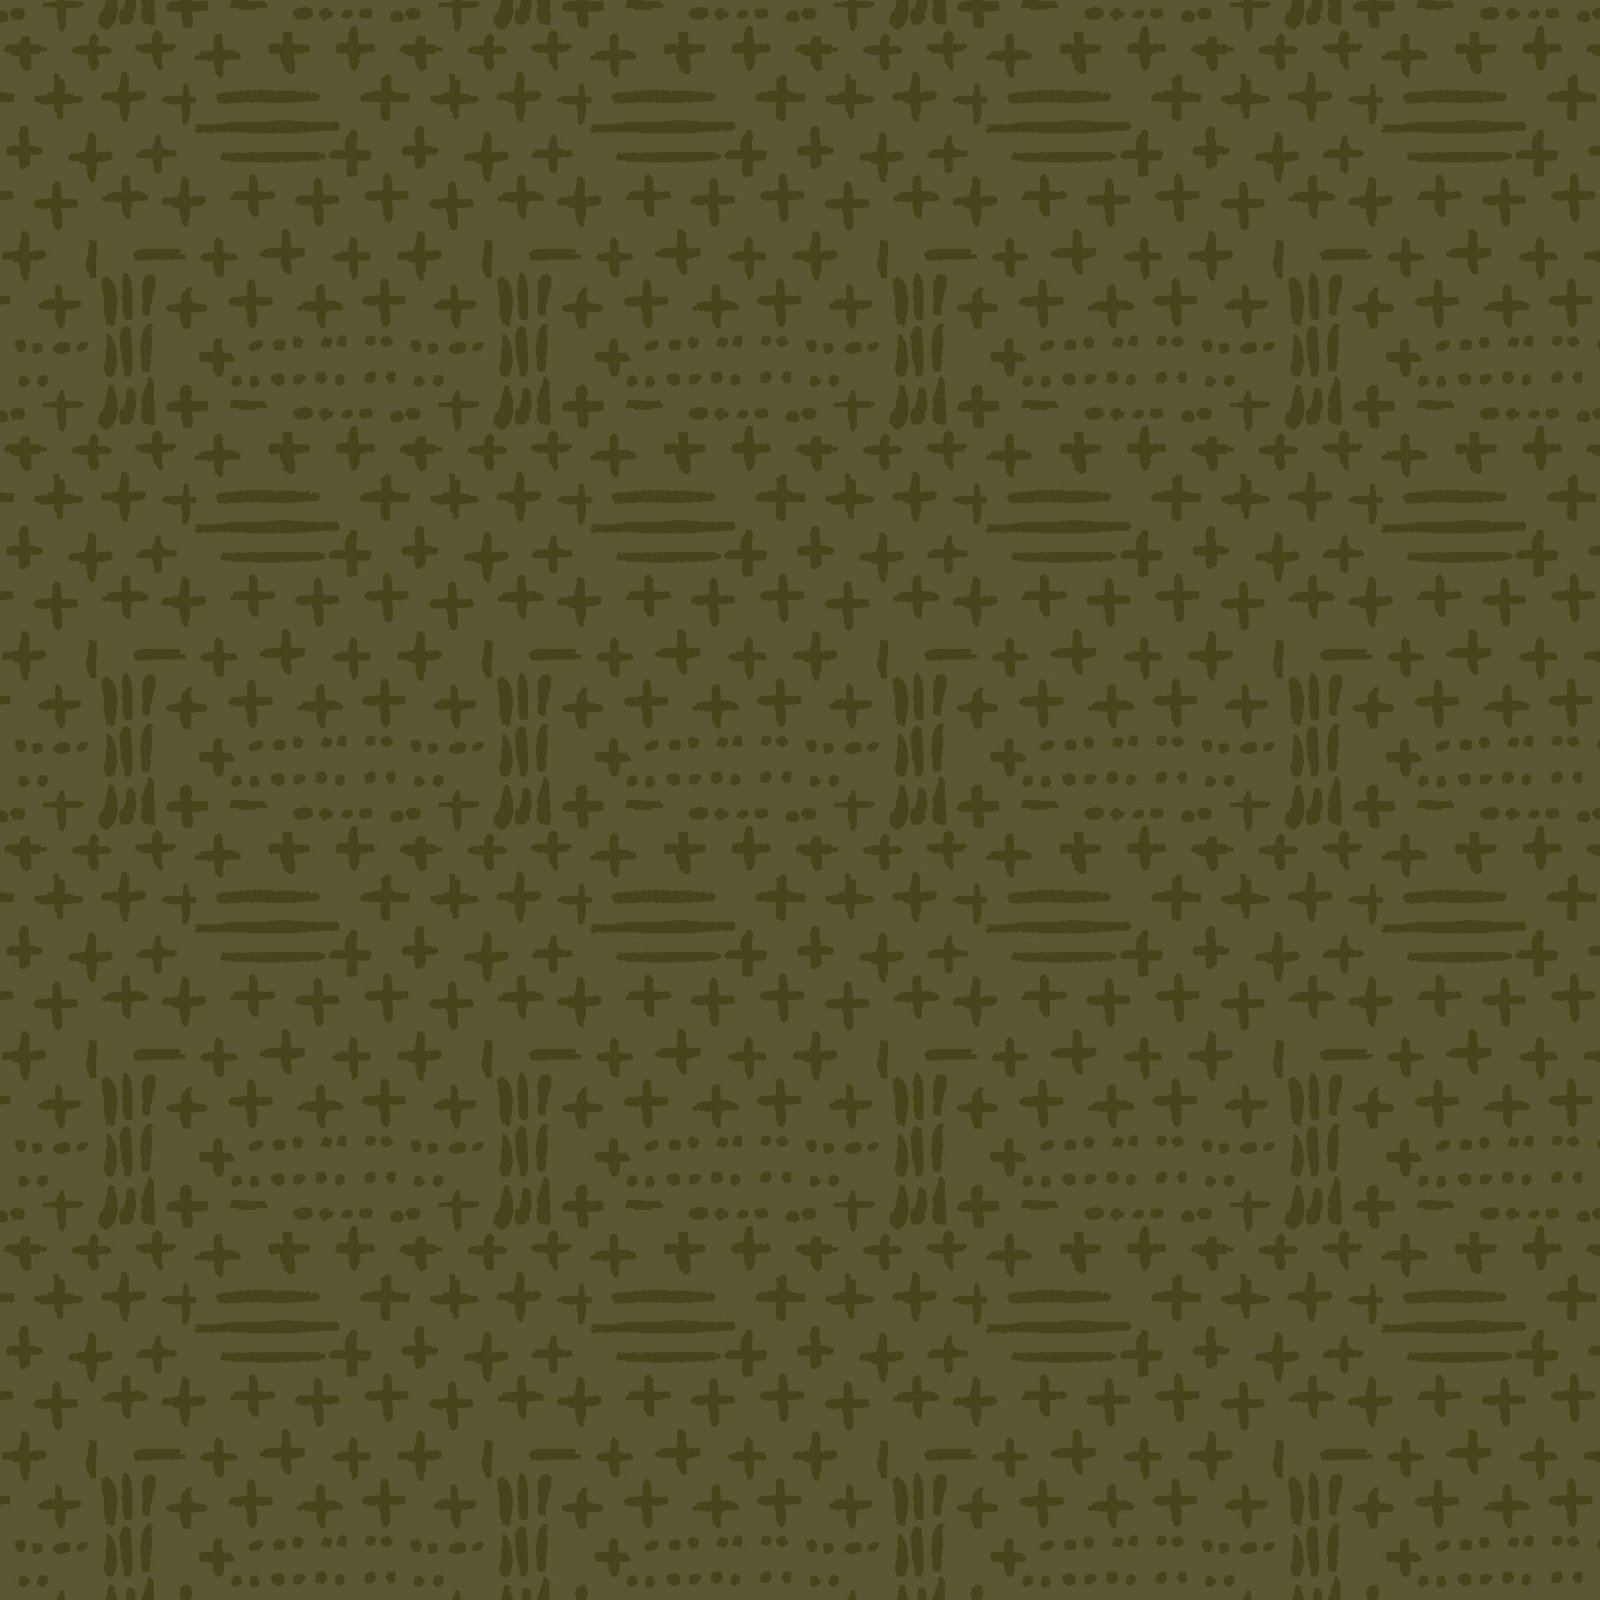 HG-Folk Art Flannel IV 2583F-66 Forest - Dots and Dashes